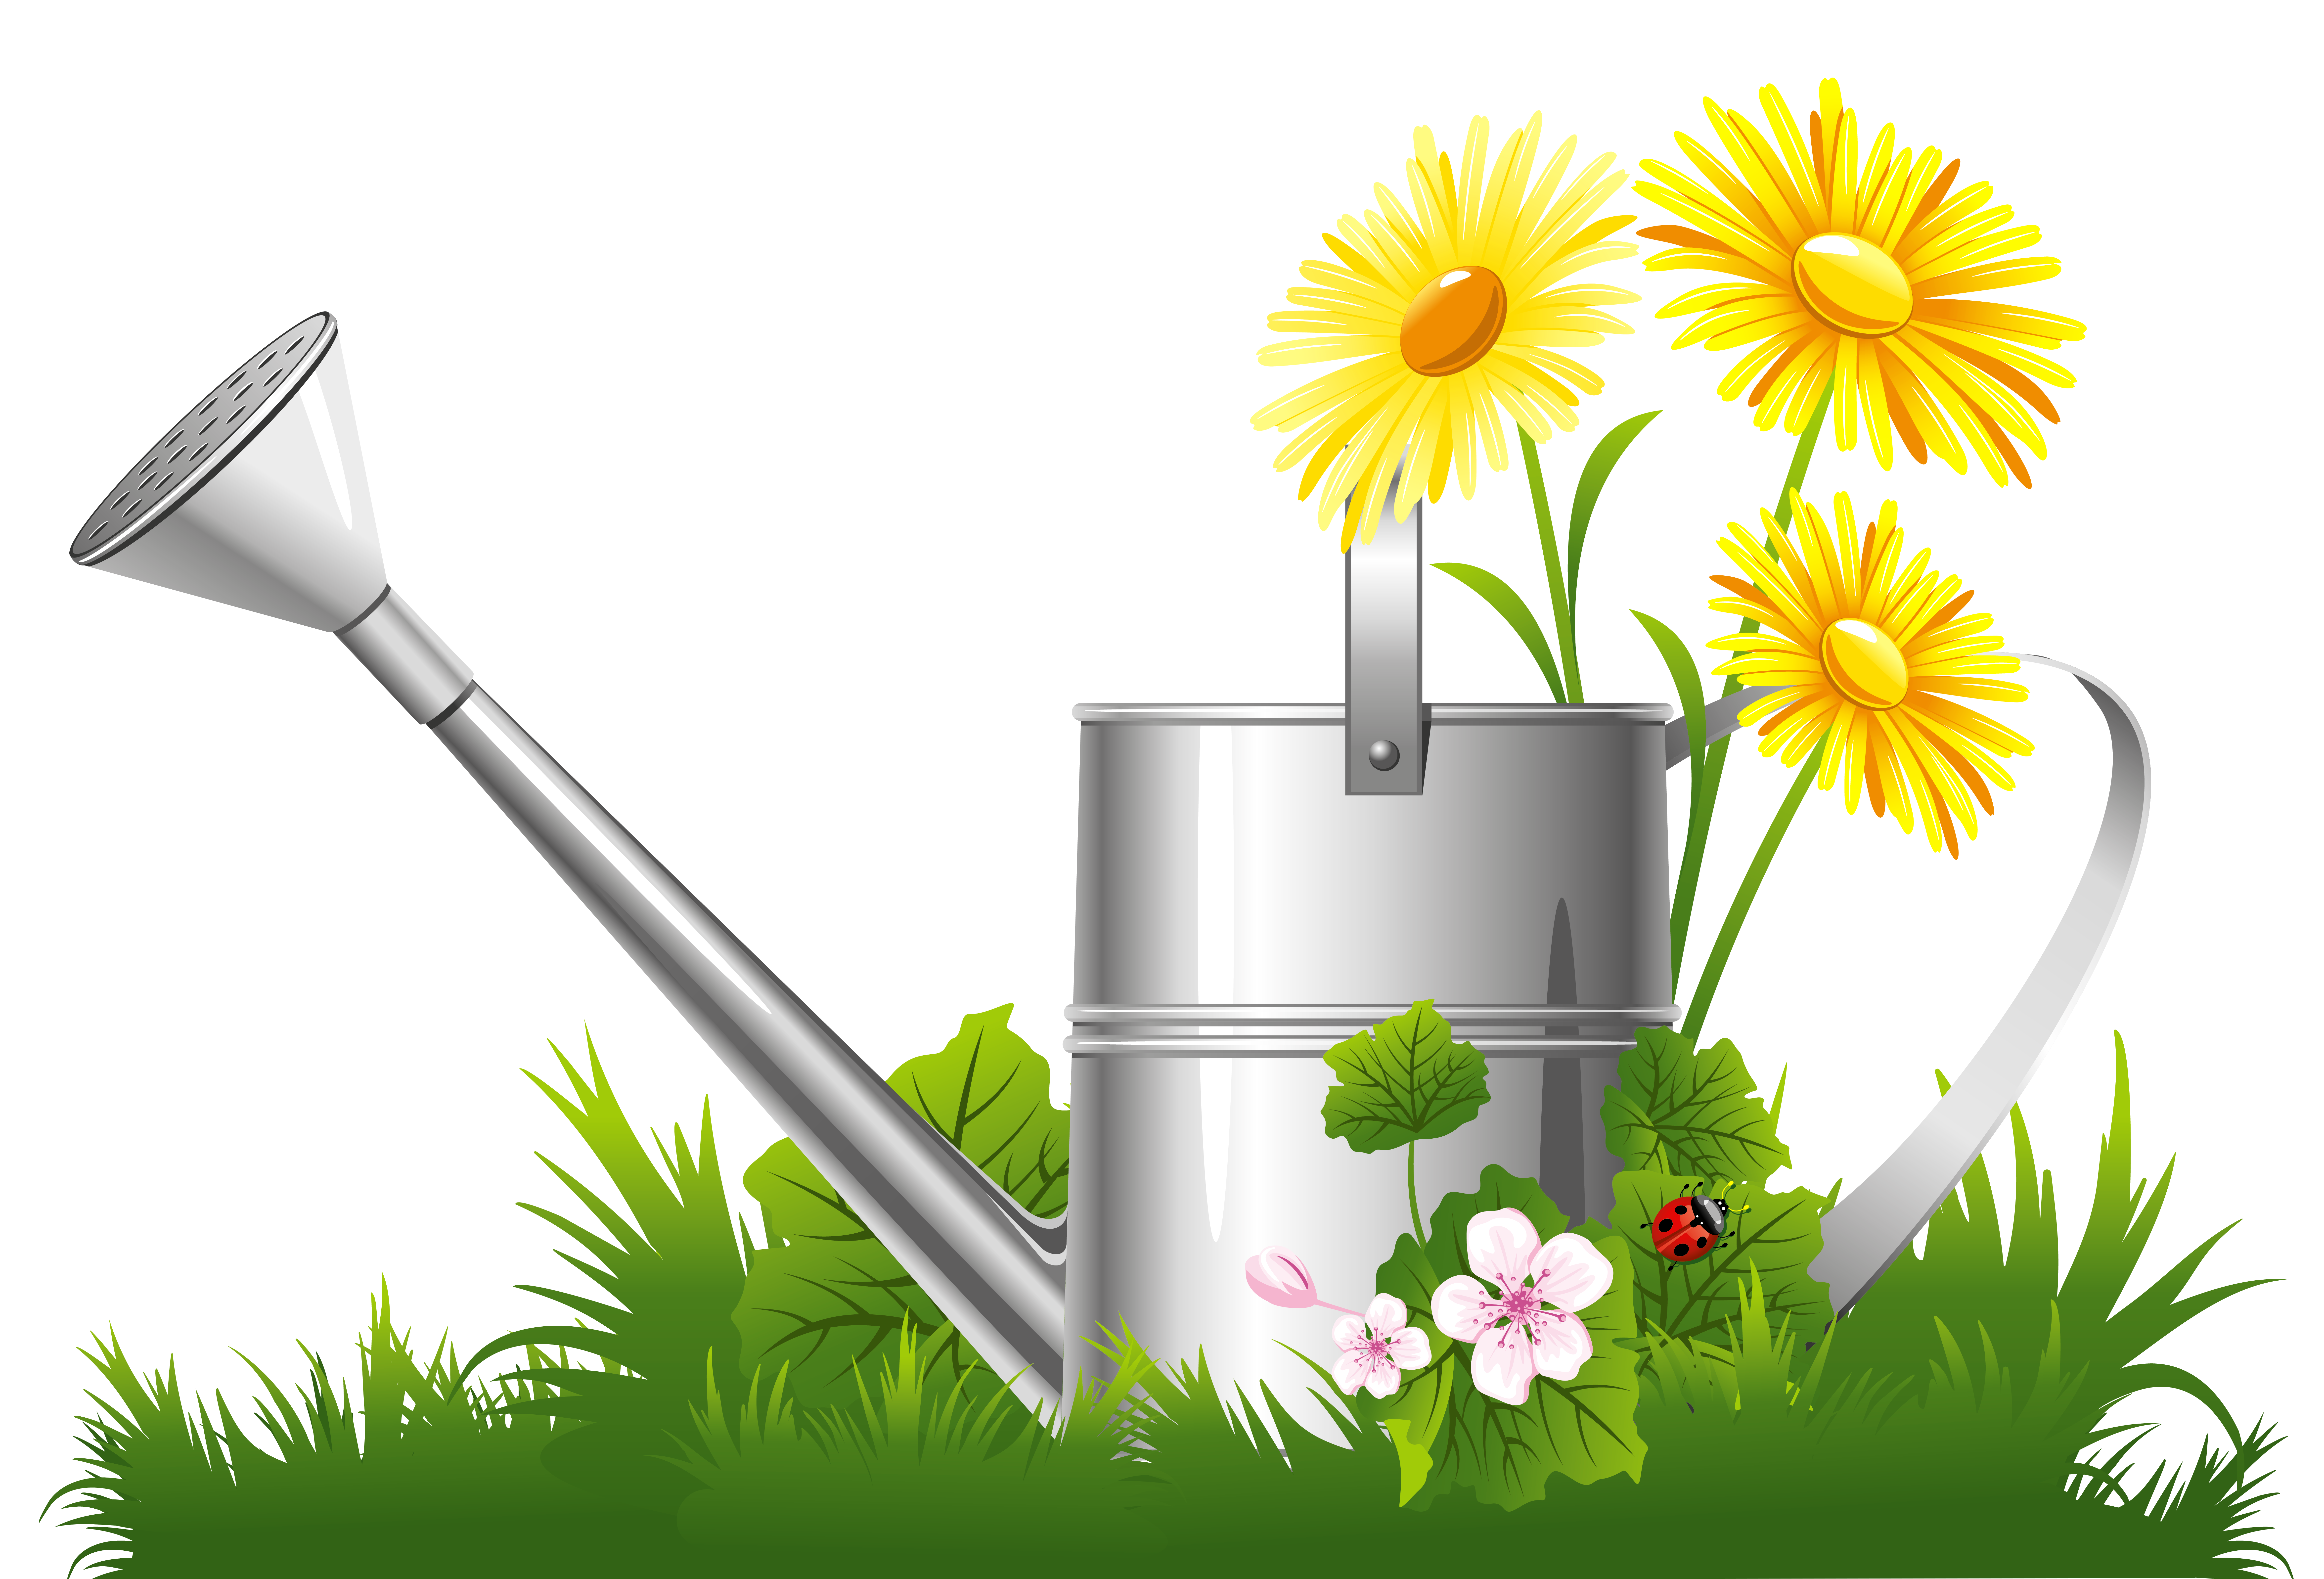 spring grass clipart - Clipground